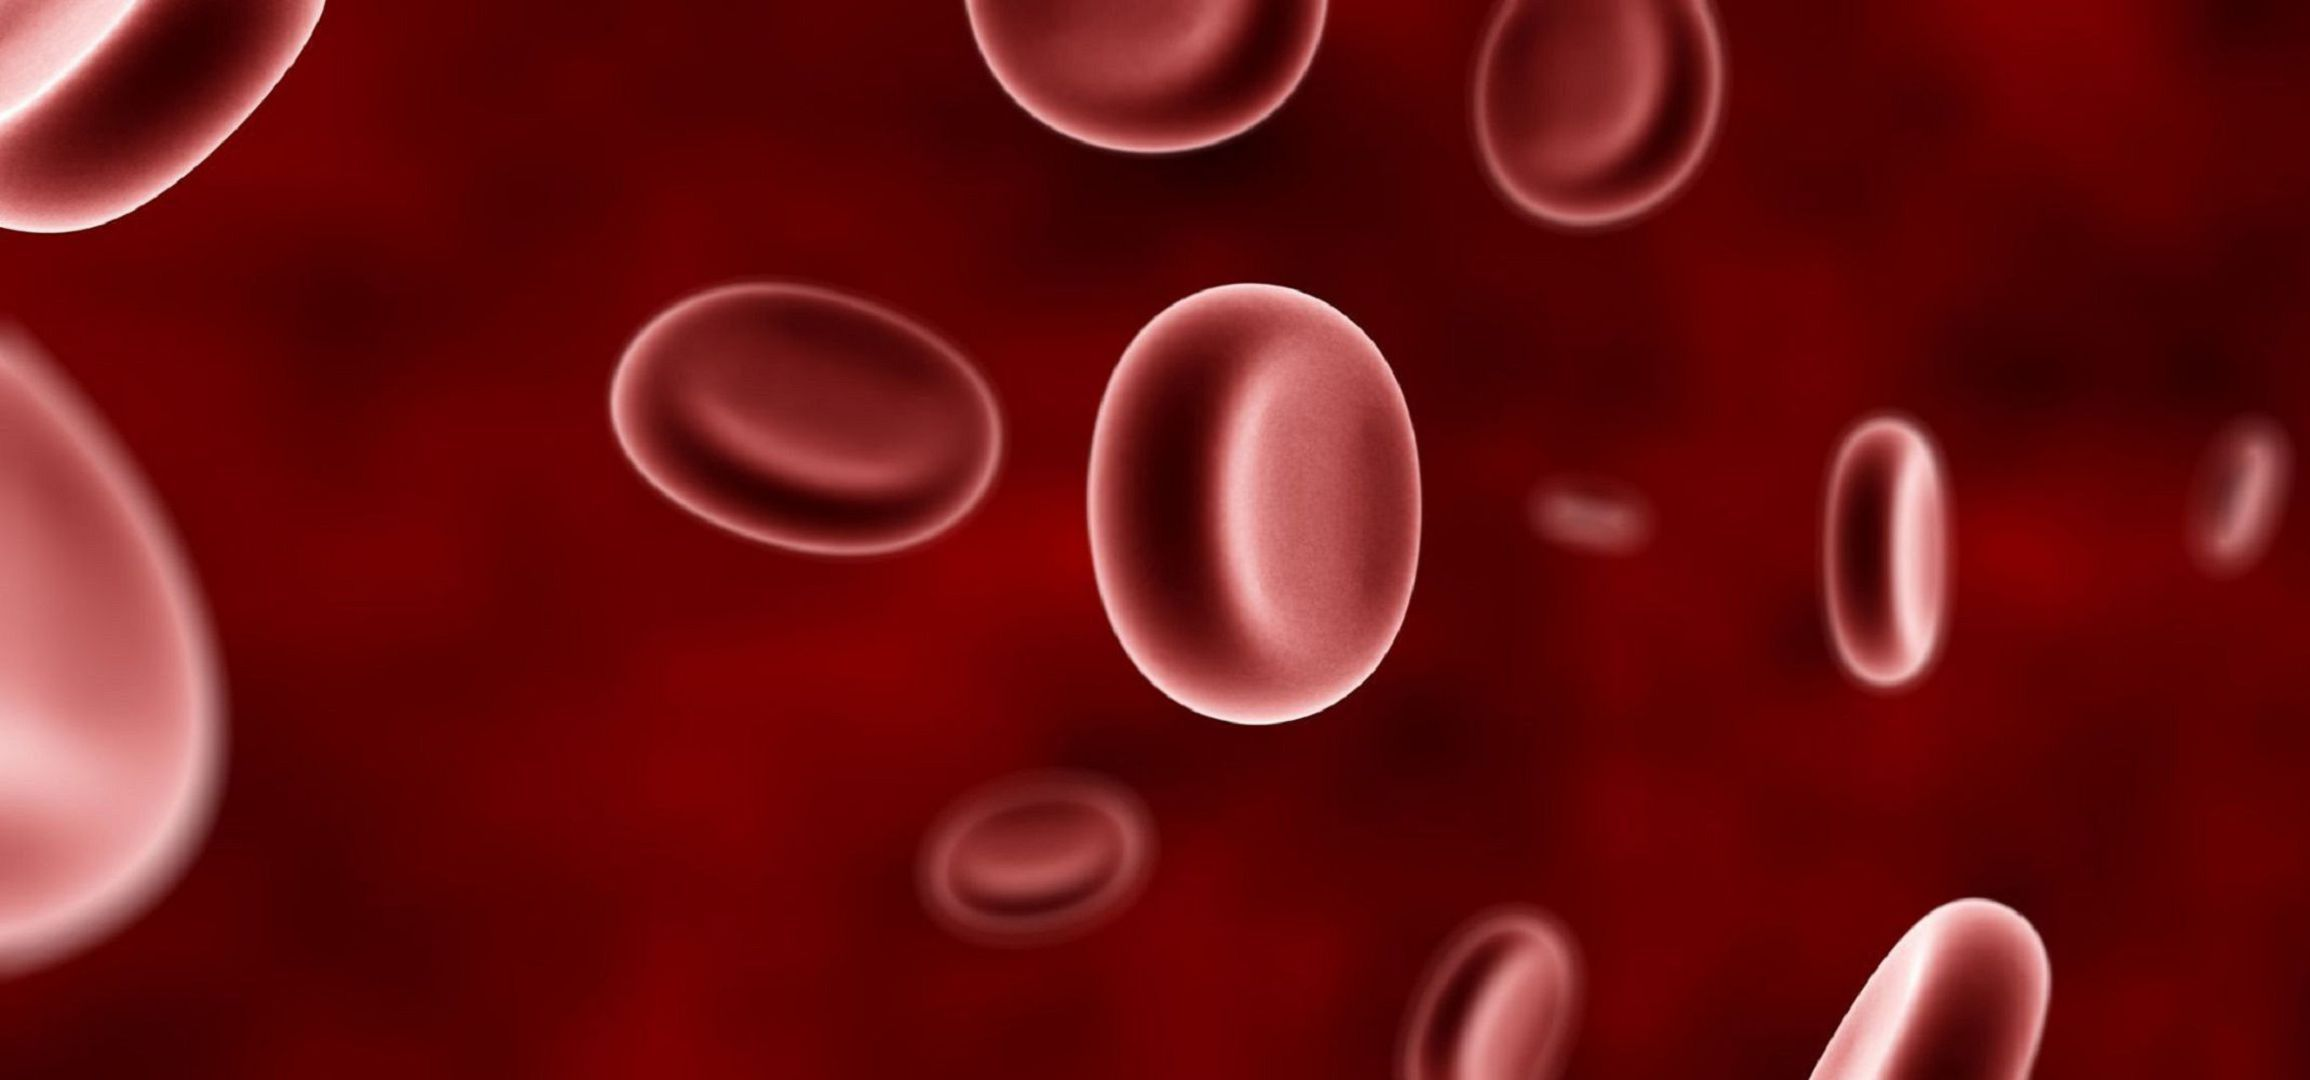 Blood Cells In High Resolution